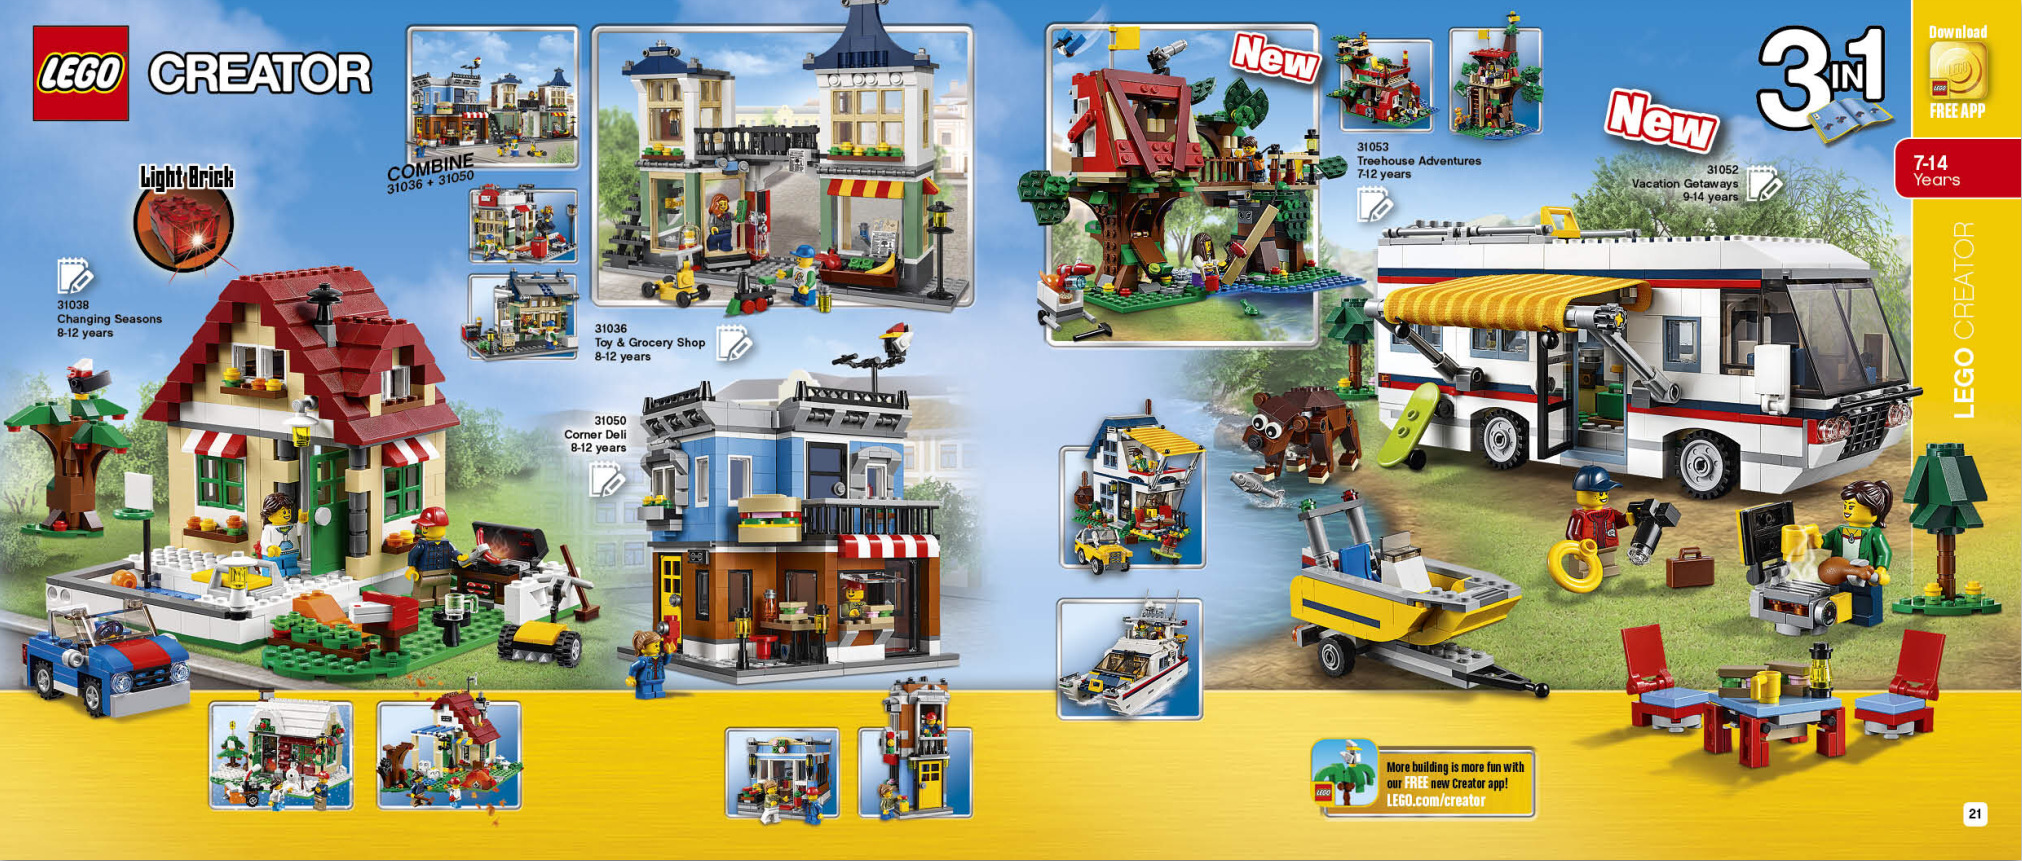 second half 2016 lego catalogue june december. Black Bedroom Furniture Sets. Home Design Ideas